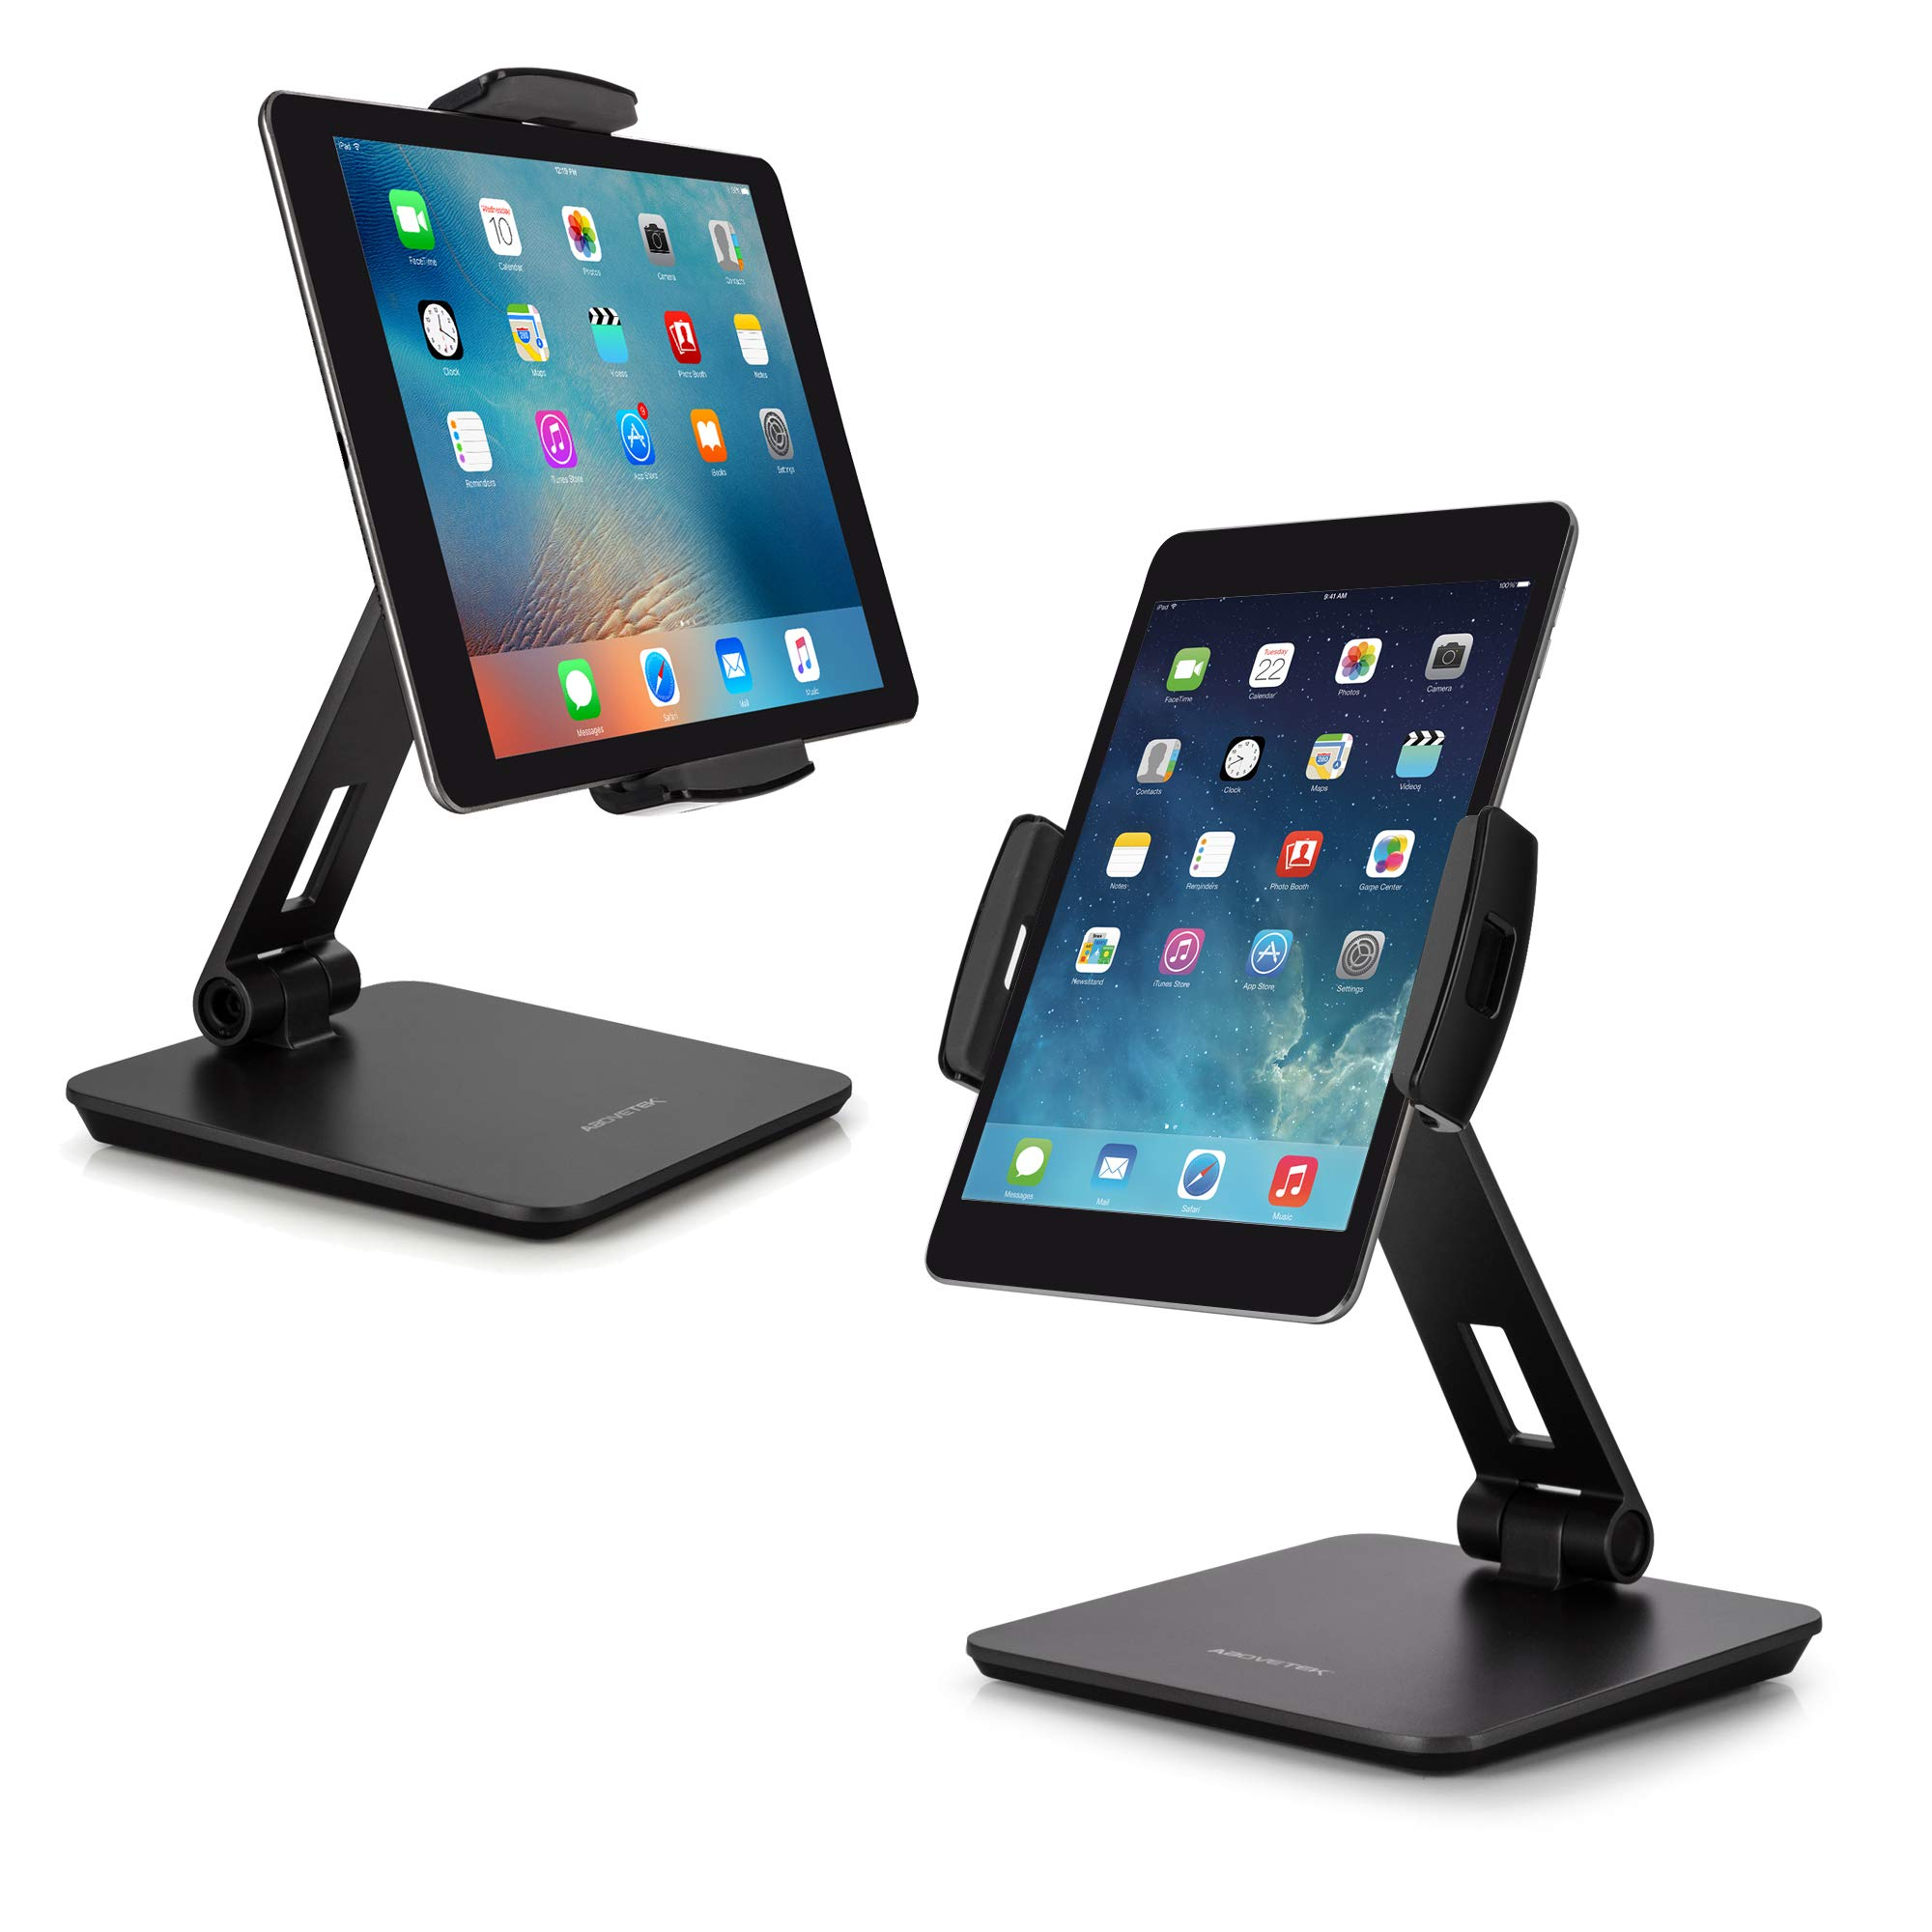 AboveTEK Business Kiosk Aluminum Tablet Stand, 360° Swivel Tablet & Phone Holders for Any 4-14'' Display Tablets or Cell Phones, Professional & Sturdy for Store POS Office Showroom (Grey)